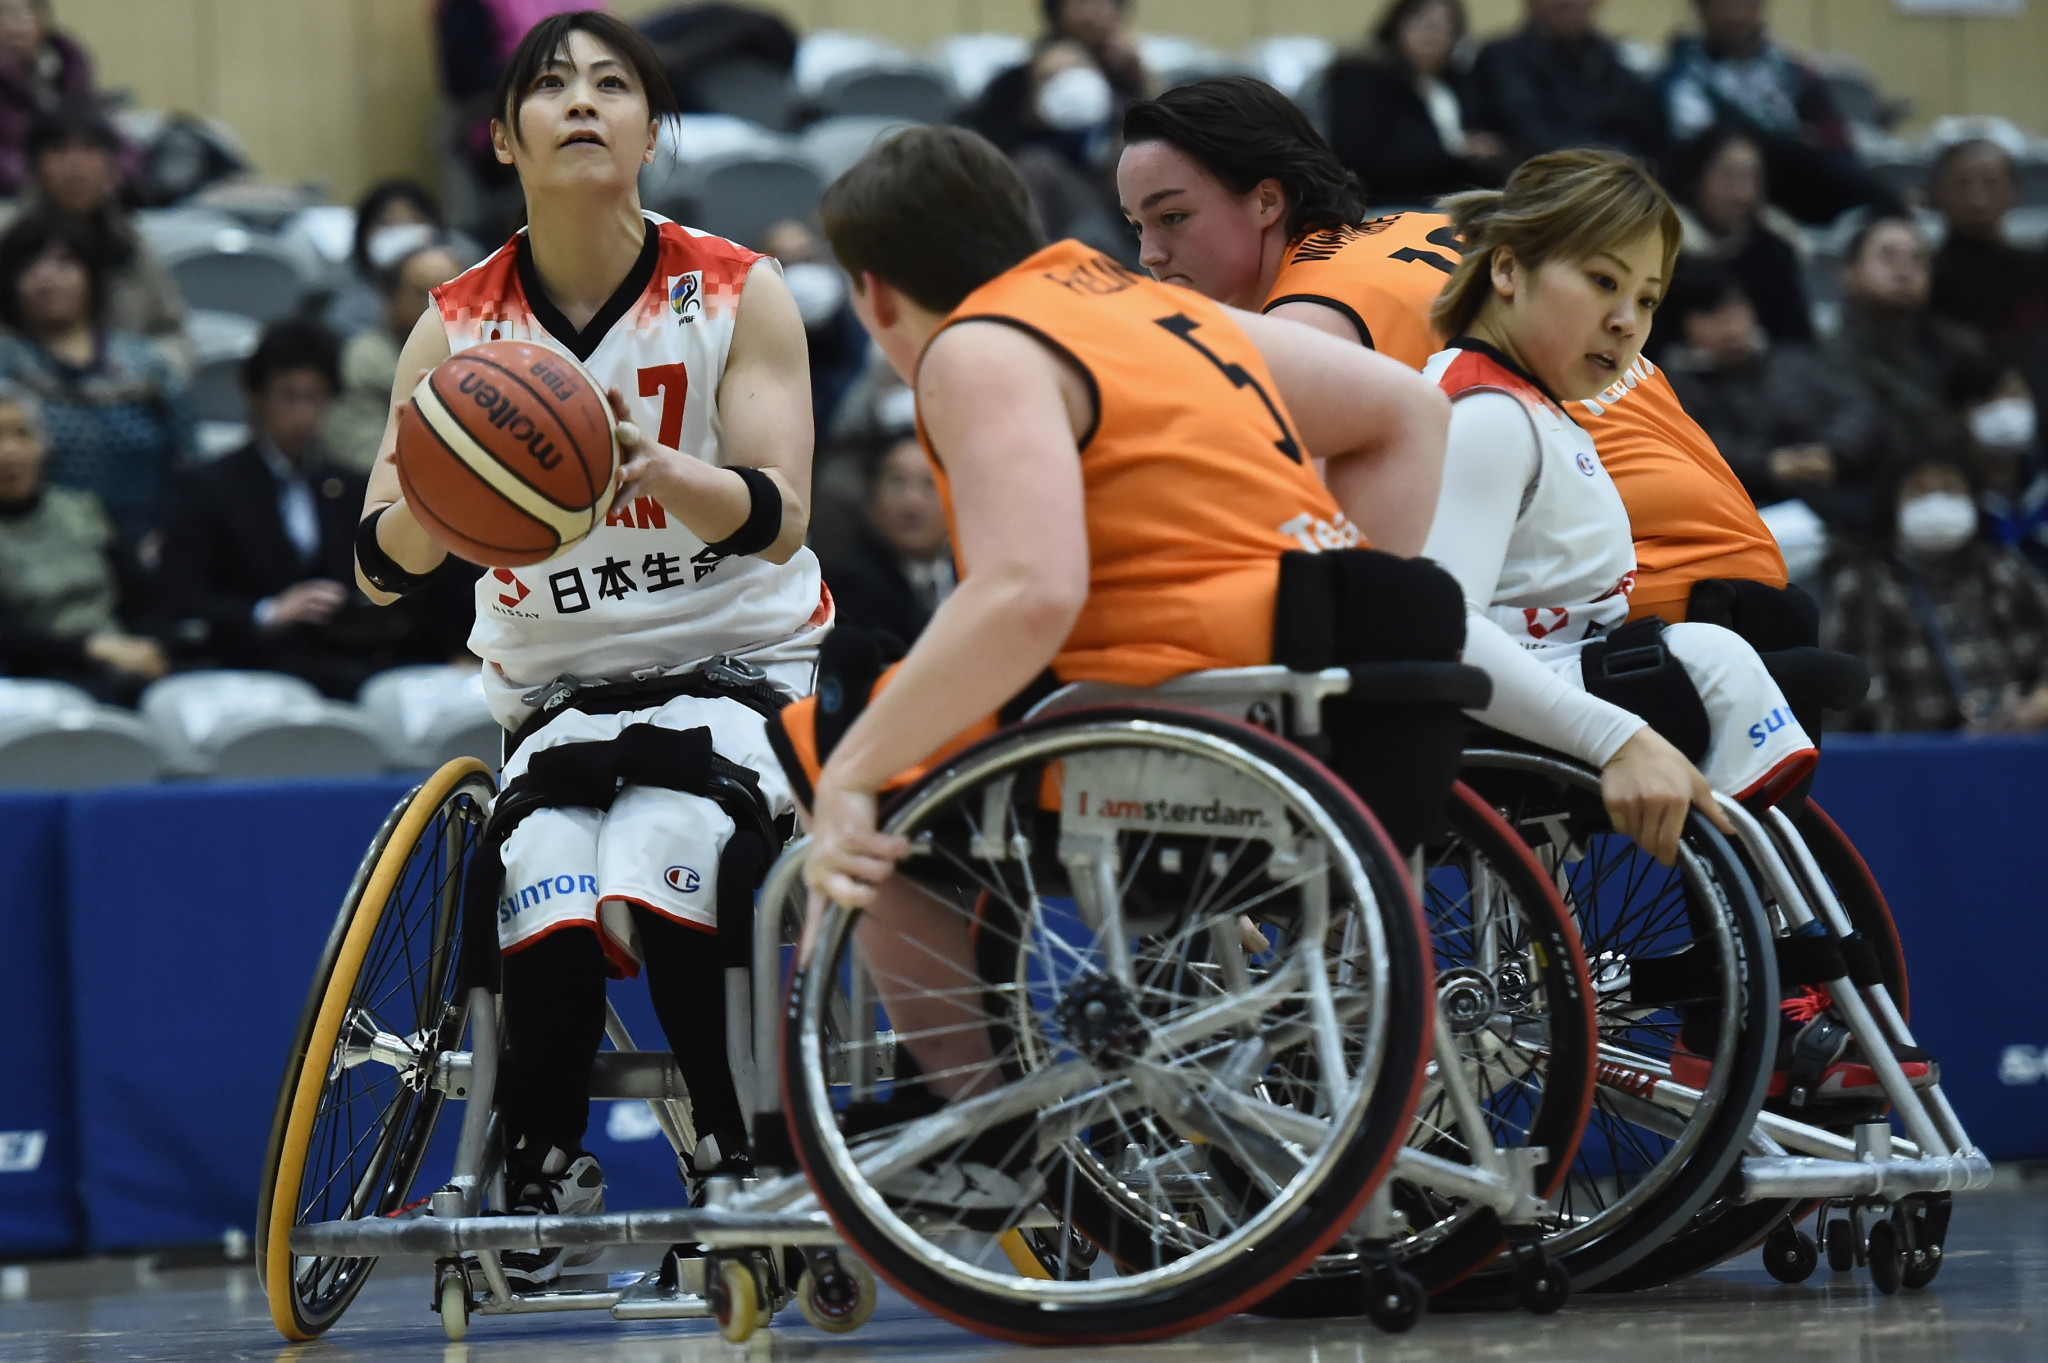 The IPC's dispute with the IWBF stems from the IWBF being found non-compliant with the 2015 IPC Athlete Classification Code ©Getty Images